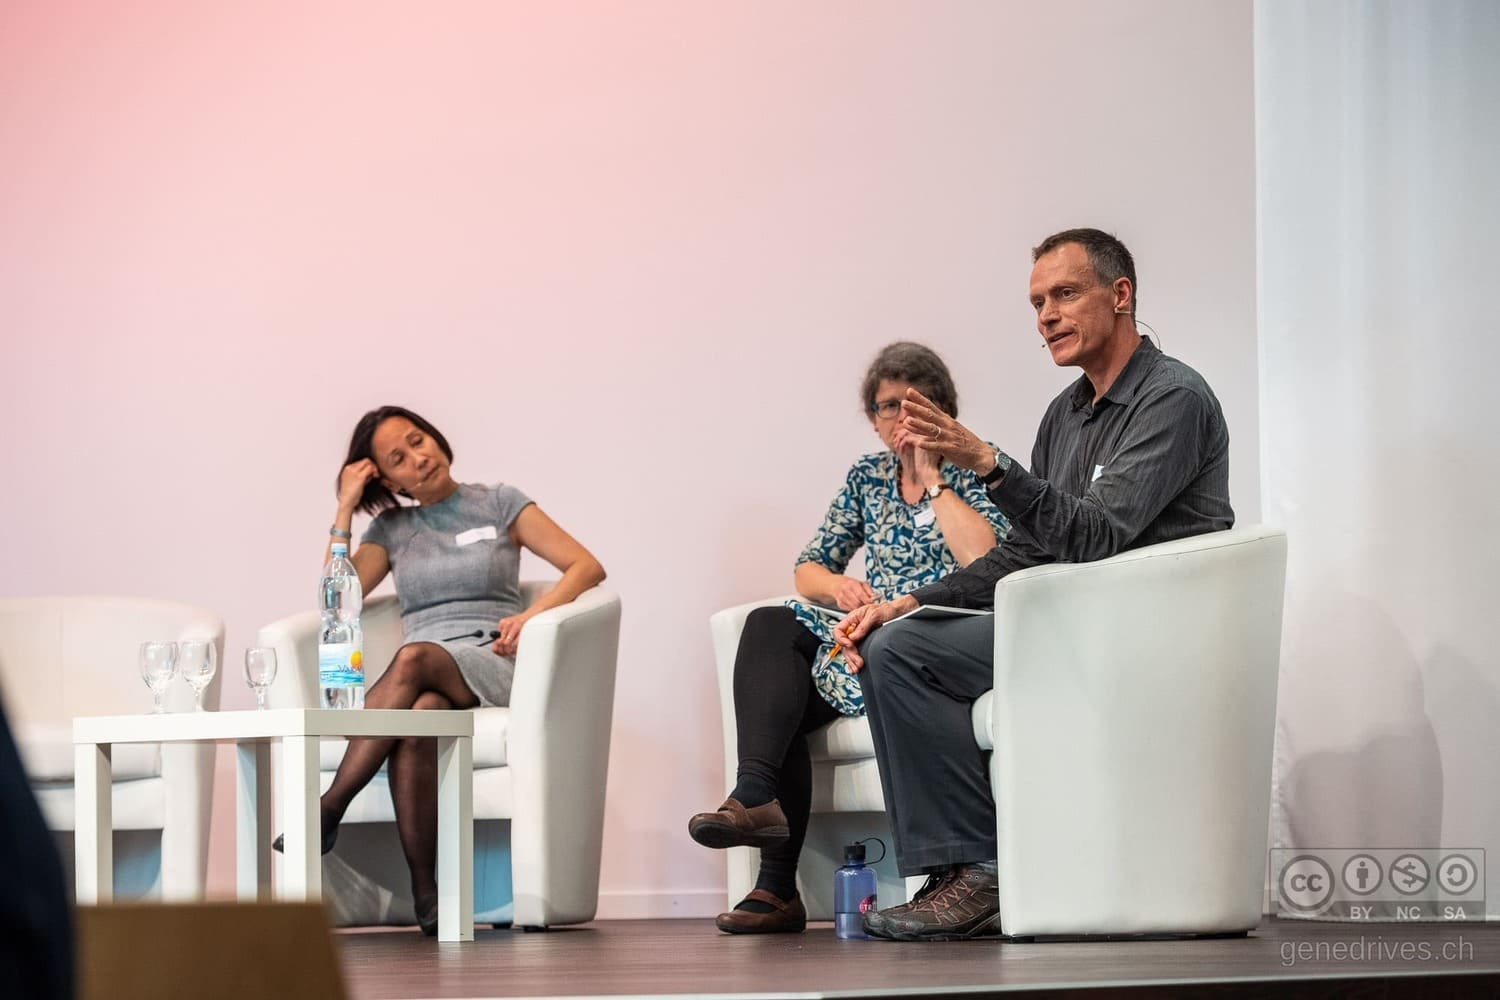 Christopher Preston discusses with Lim Li Ching and Helen Wallace at the GeneDrive Symposium 2019.